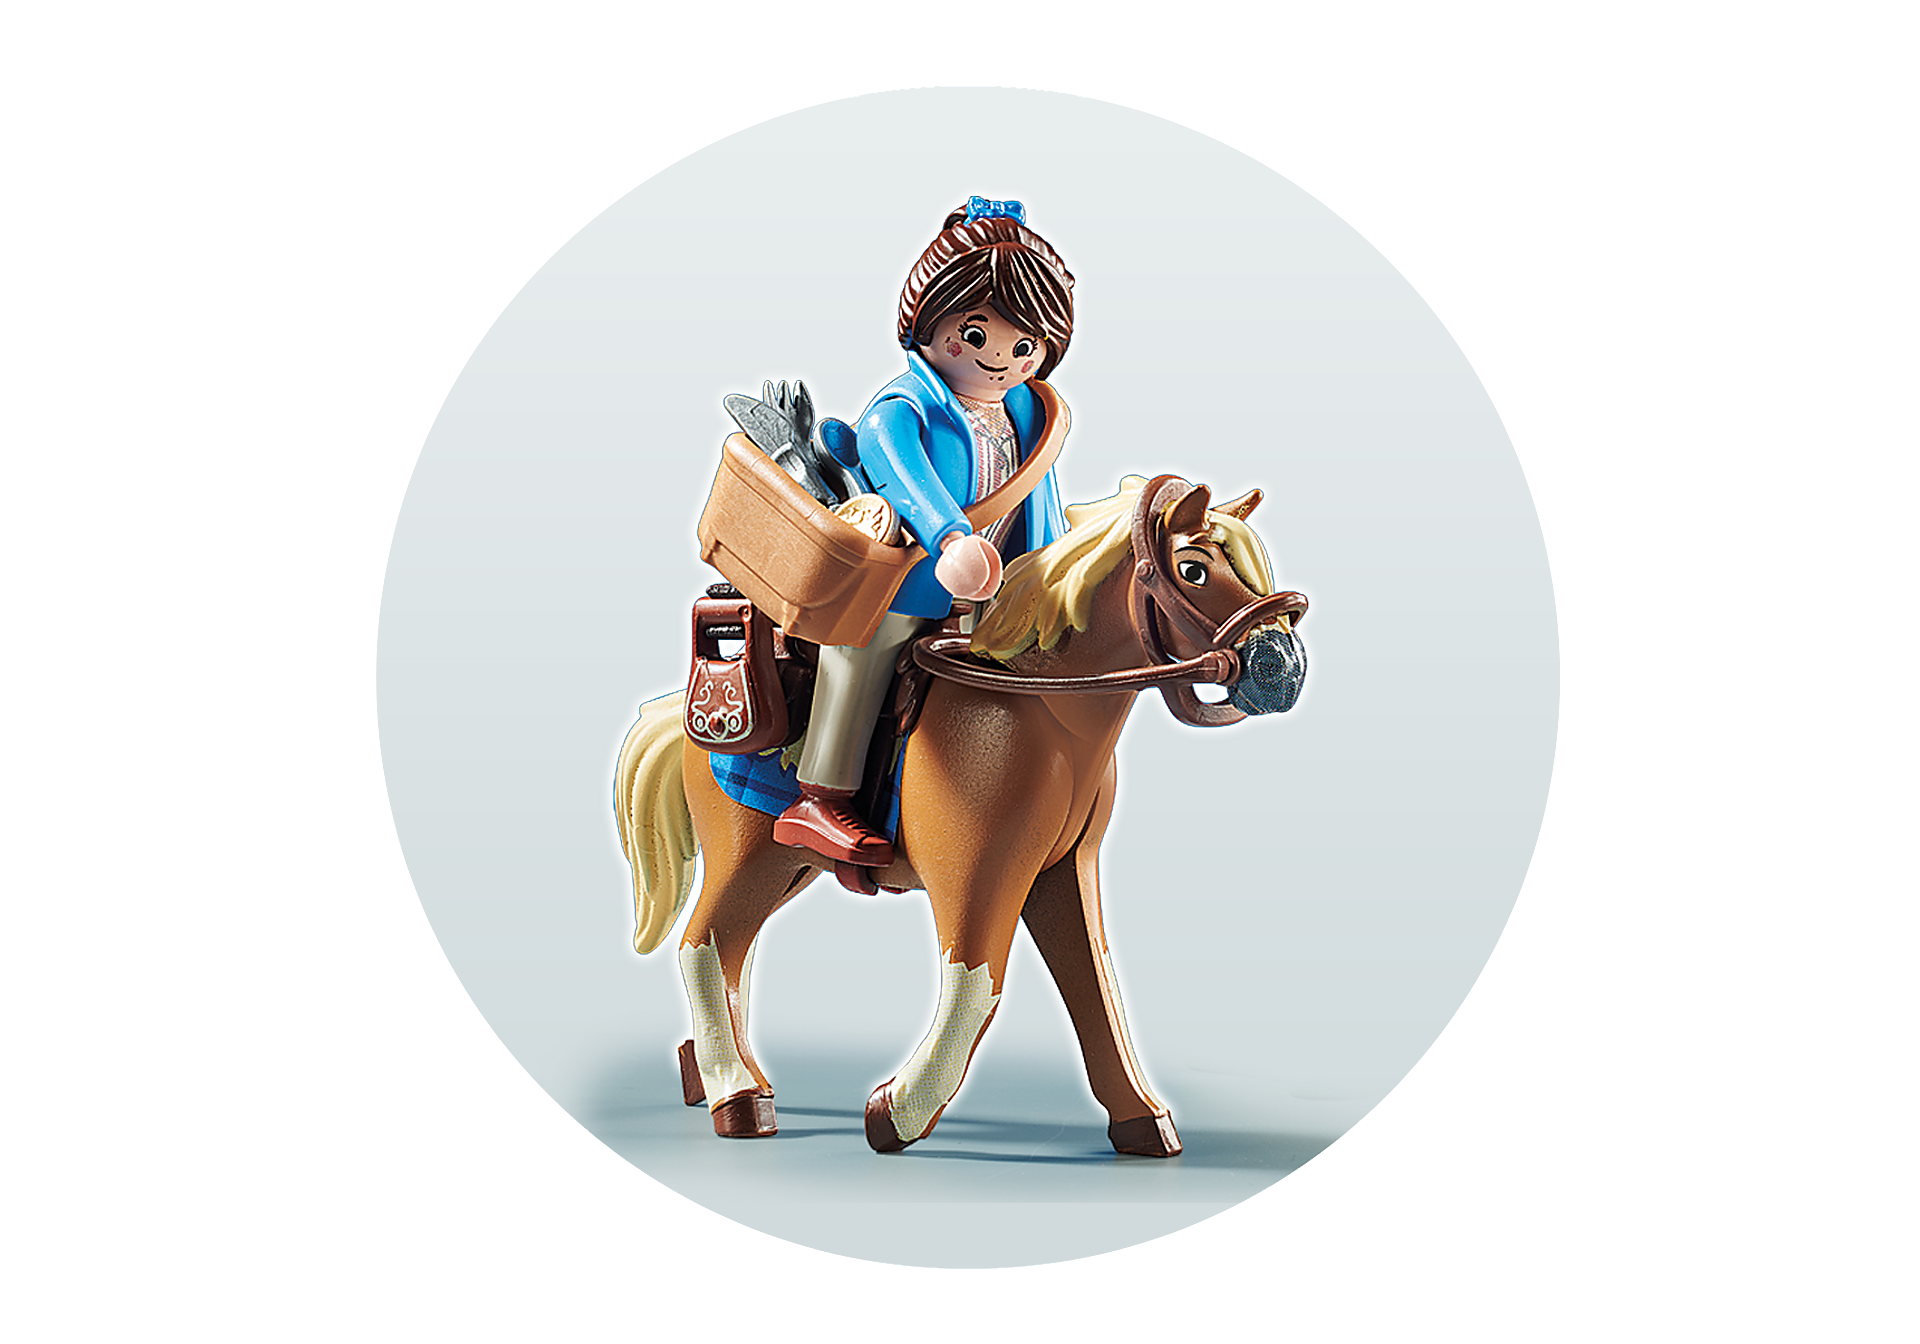 70072 PLAYMOBIL: THE MOVIE Marla avec cheval  zoom image4